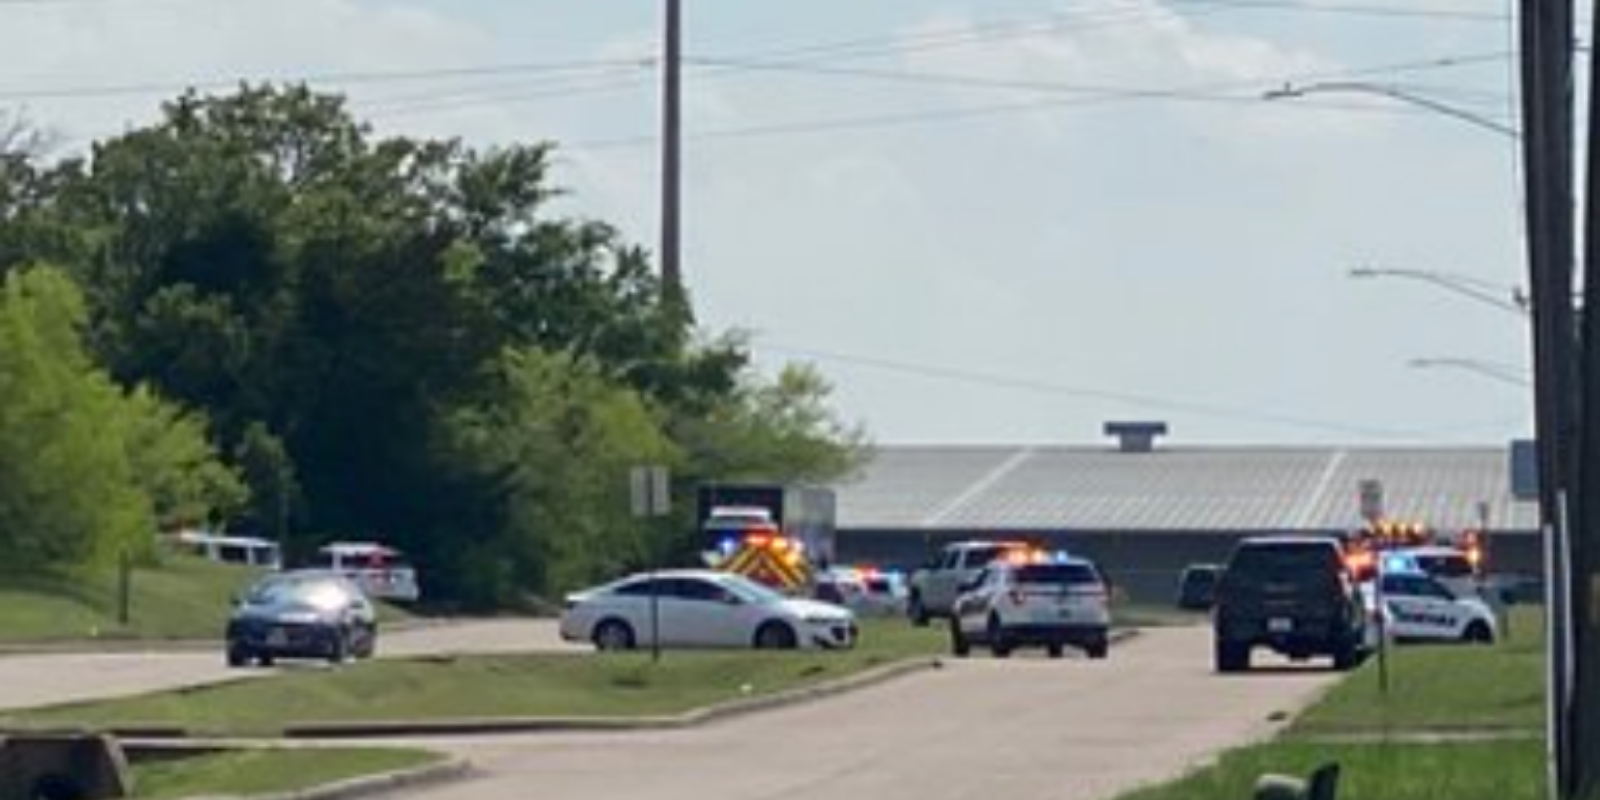 1 dead, 5 injured in wake of Texas cabinet plant shooting